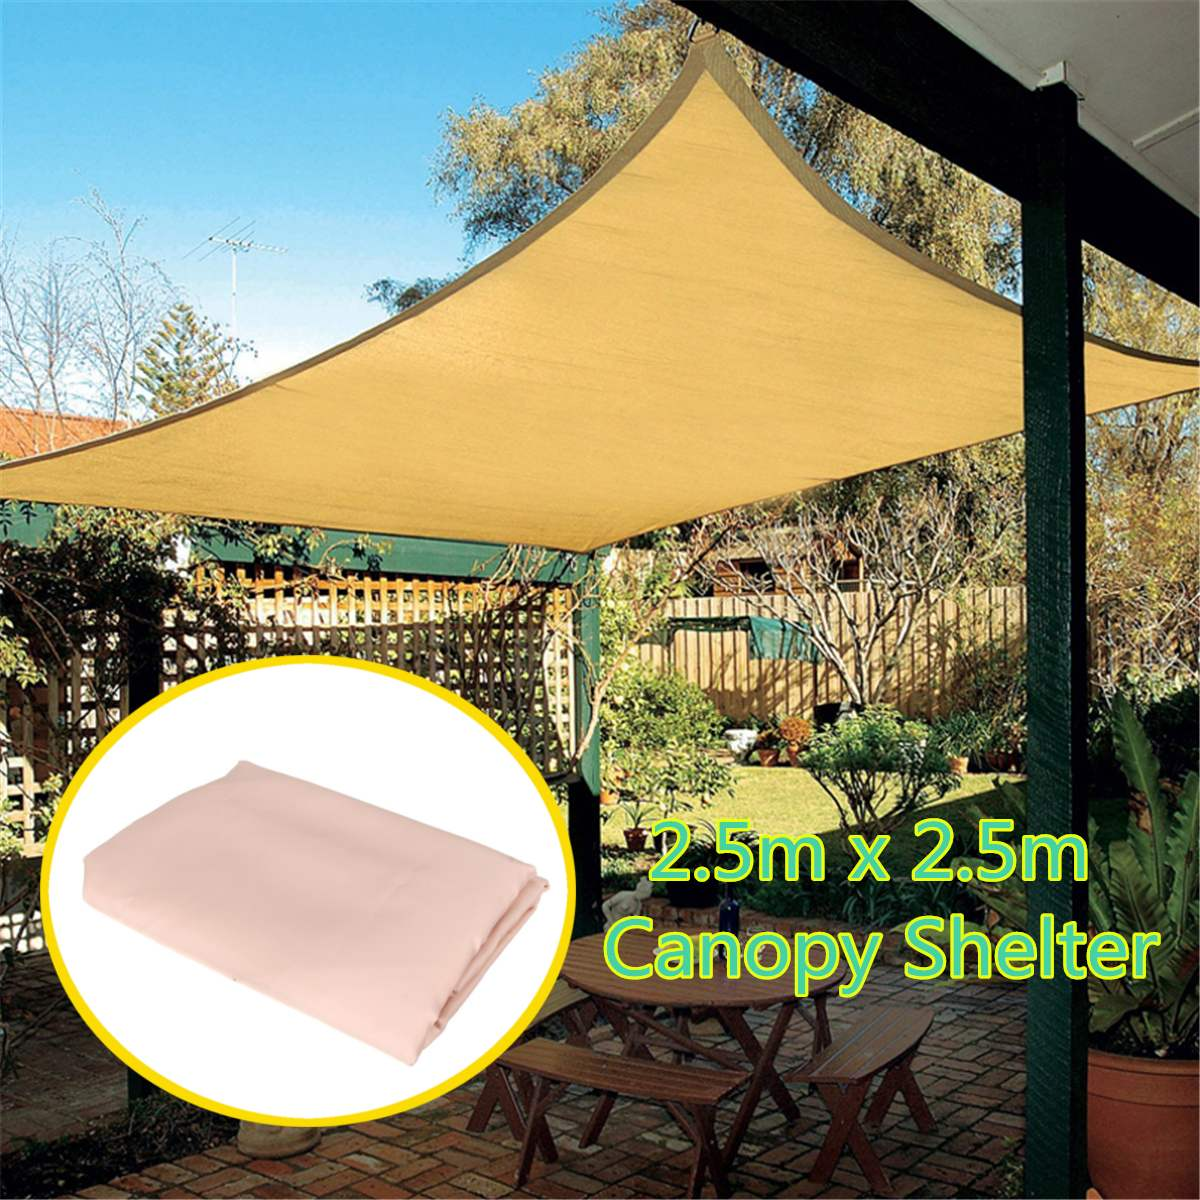 with ae awning shade itm uv block canopy lyshade patio hardware awnings triangle sail sun for